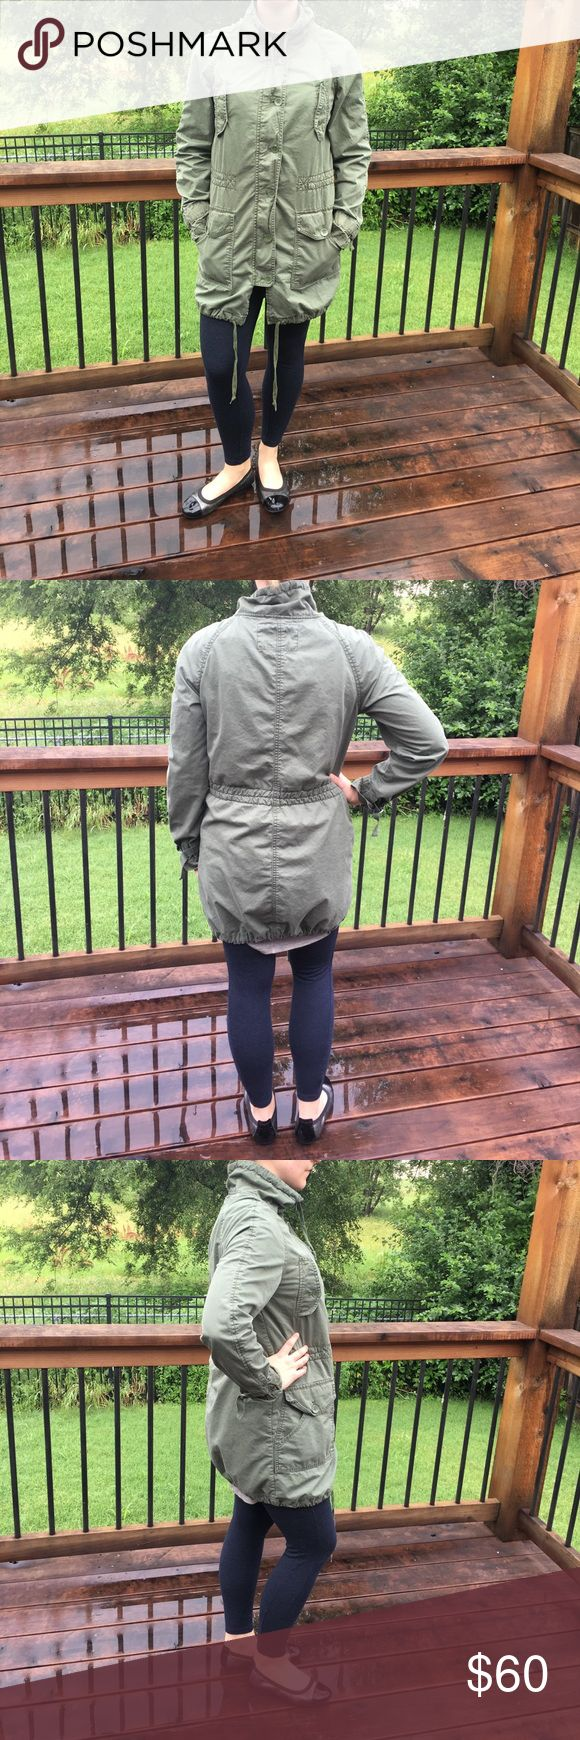 Adorable GAP Green Military Jacket - M Super cute for any occasion and very in style right now! GAP brand, size medium. Gently used with light wear on material. 4jun17aeko GAP Jackets & Coats